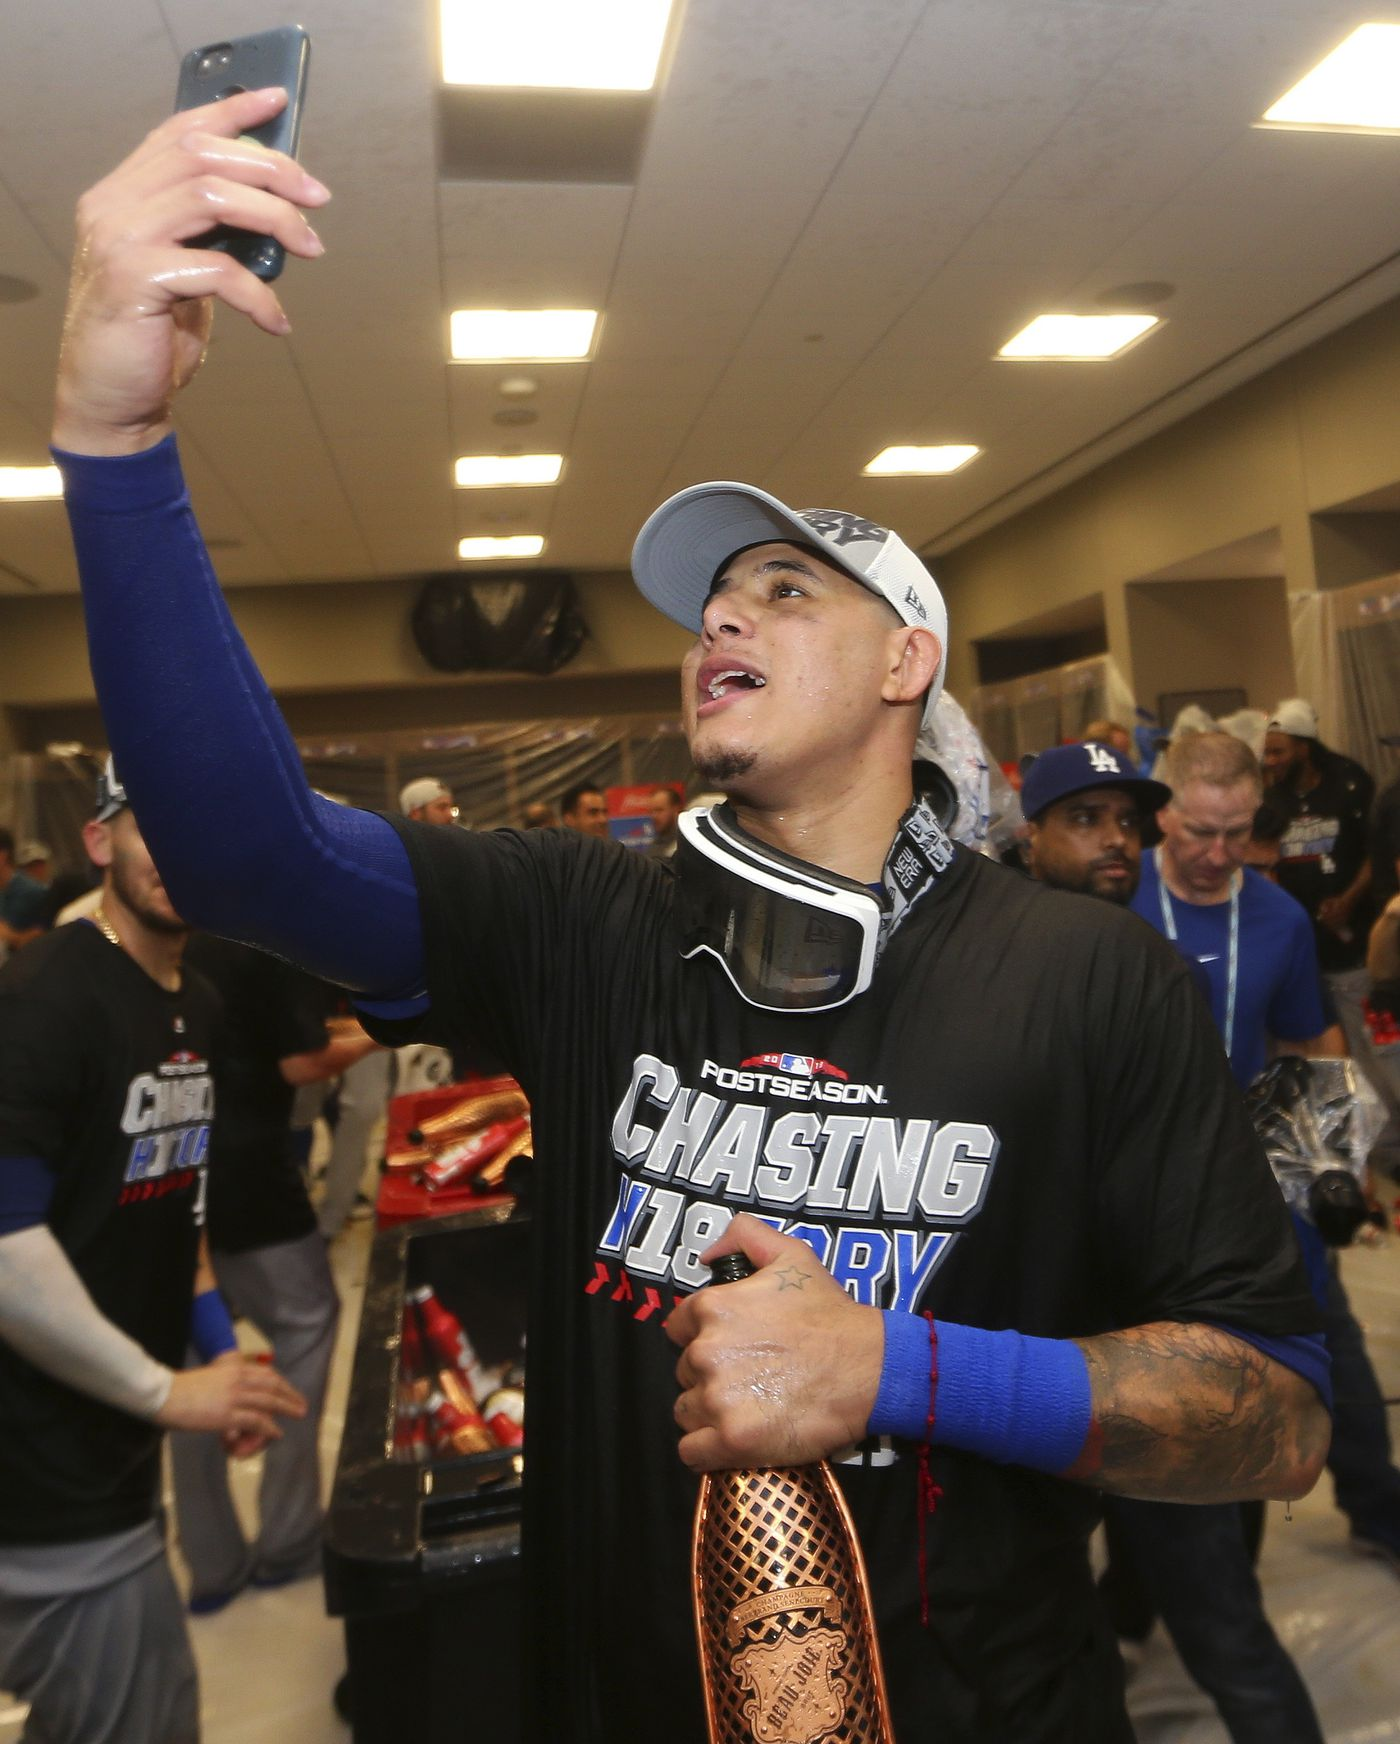 Los Angeles Dodgers Manny Machado takes a photo in the clubhouse after Game 4 of baseball's National League Division Series against the Atlanta Braves, Monday, Oct. 8, 2018, in Atlanta. The Los Angeles Dodgers won 6-2. (AP Photo/John Bazemore)